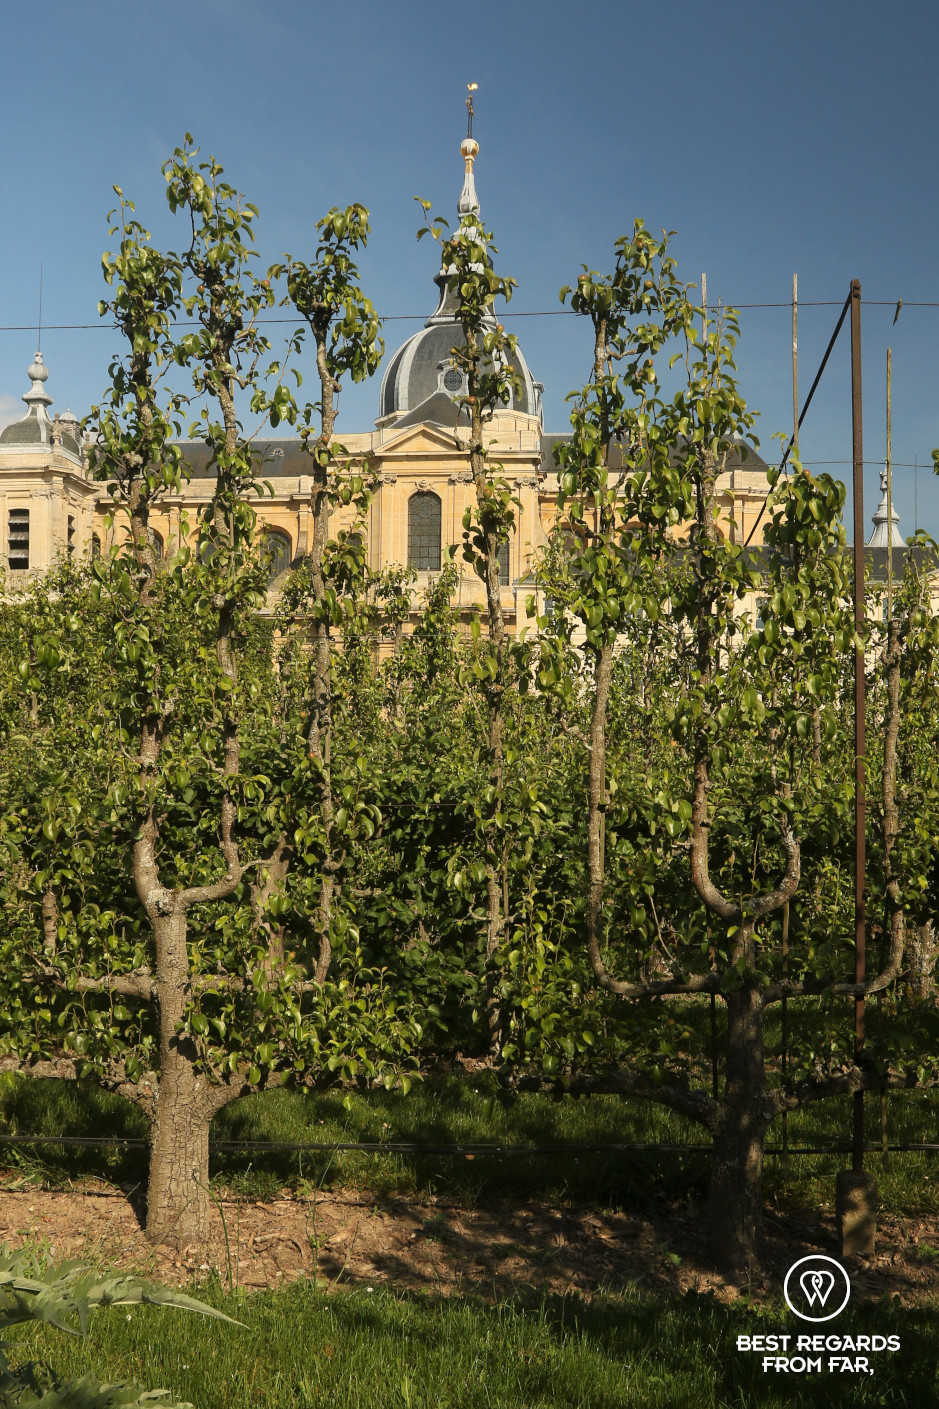 Orchard in the King's Kitchen Garden in Versailles: perfectly pruned fruit trees and historical cathedral in the background.